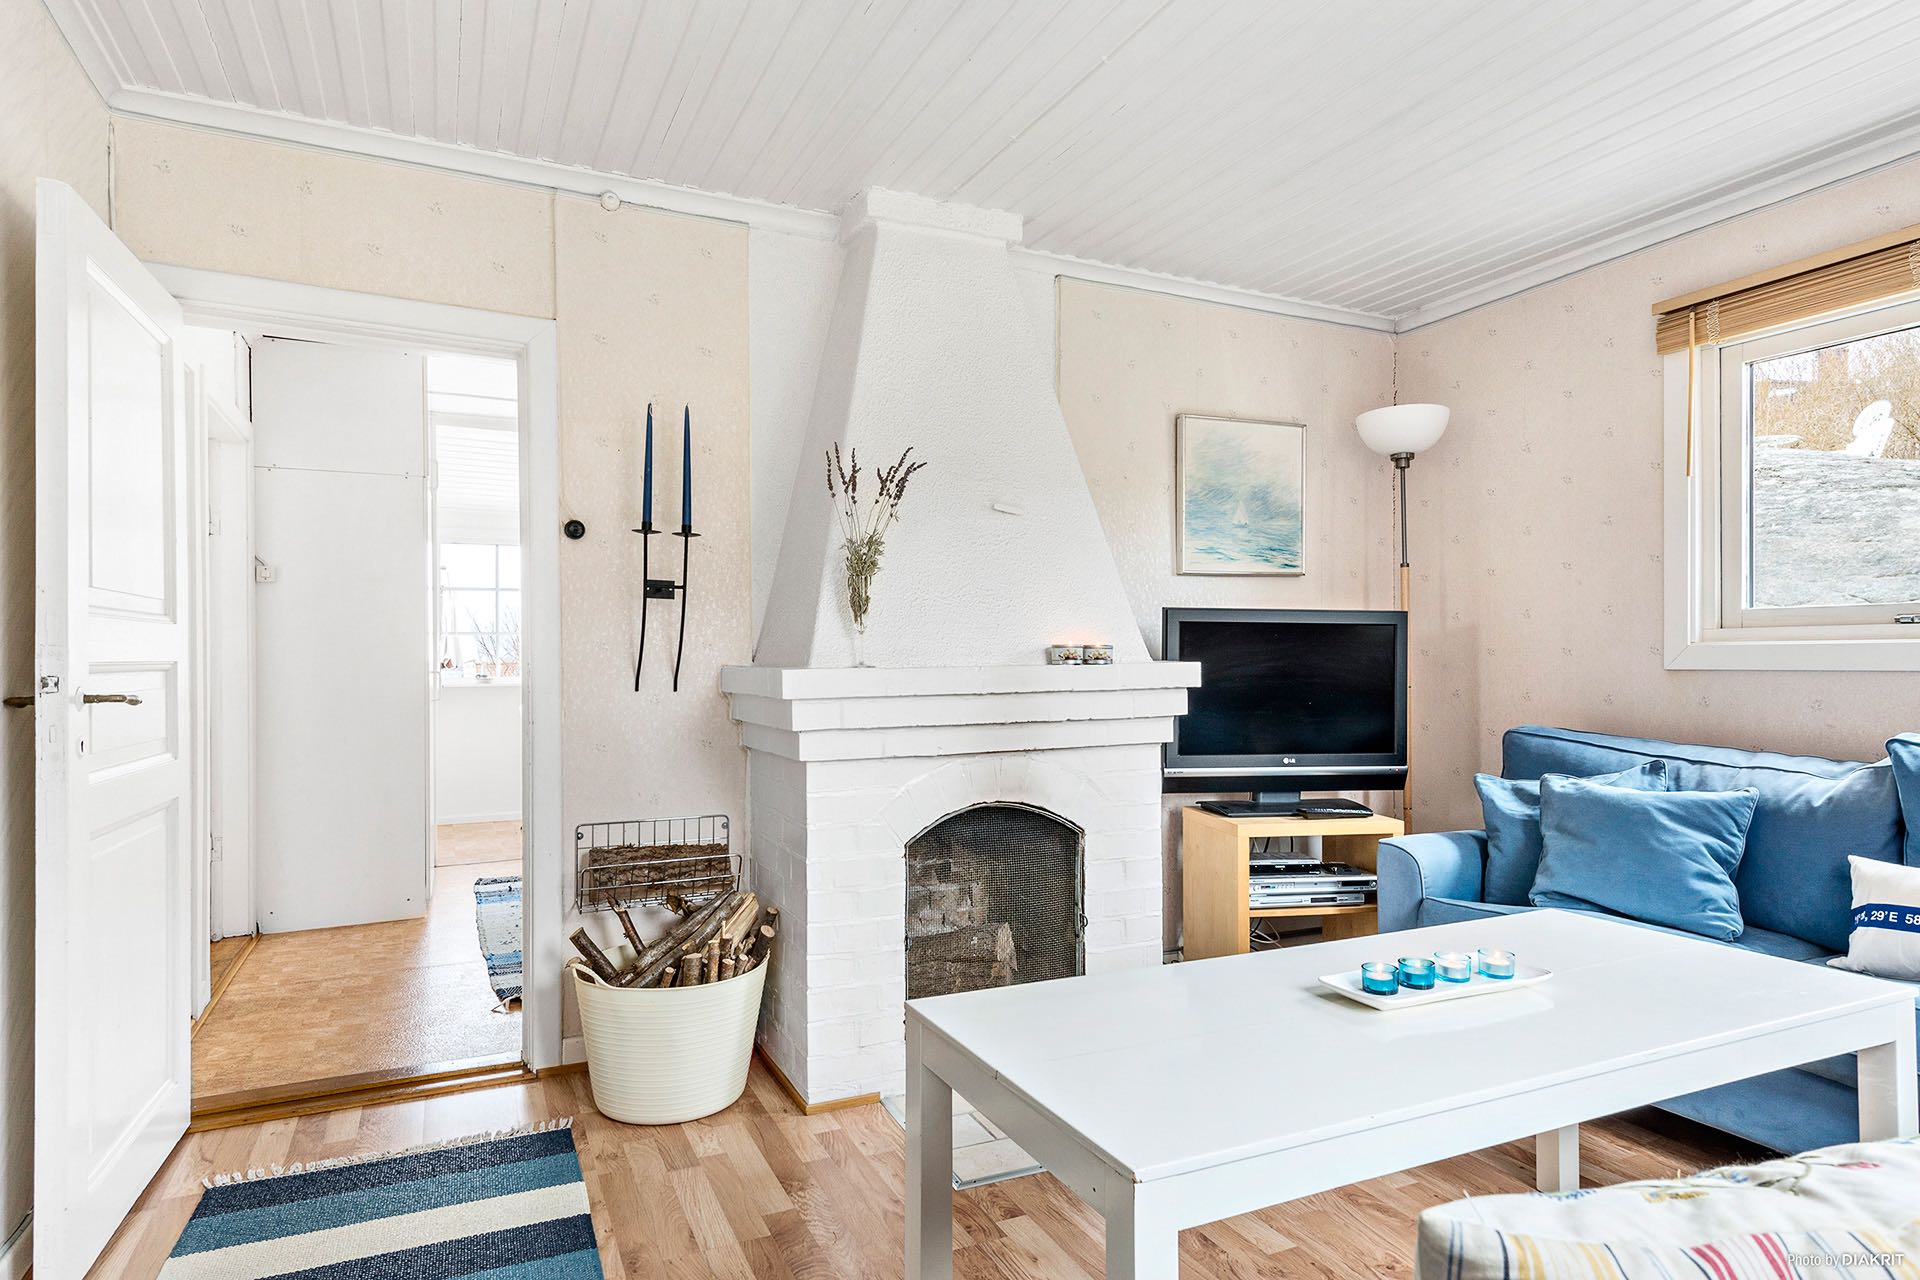 Cozy 1930 cottage overlooking the sea in Sweden | Small House Bliss